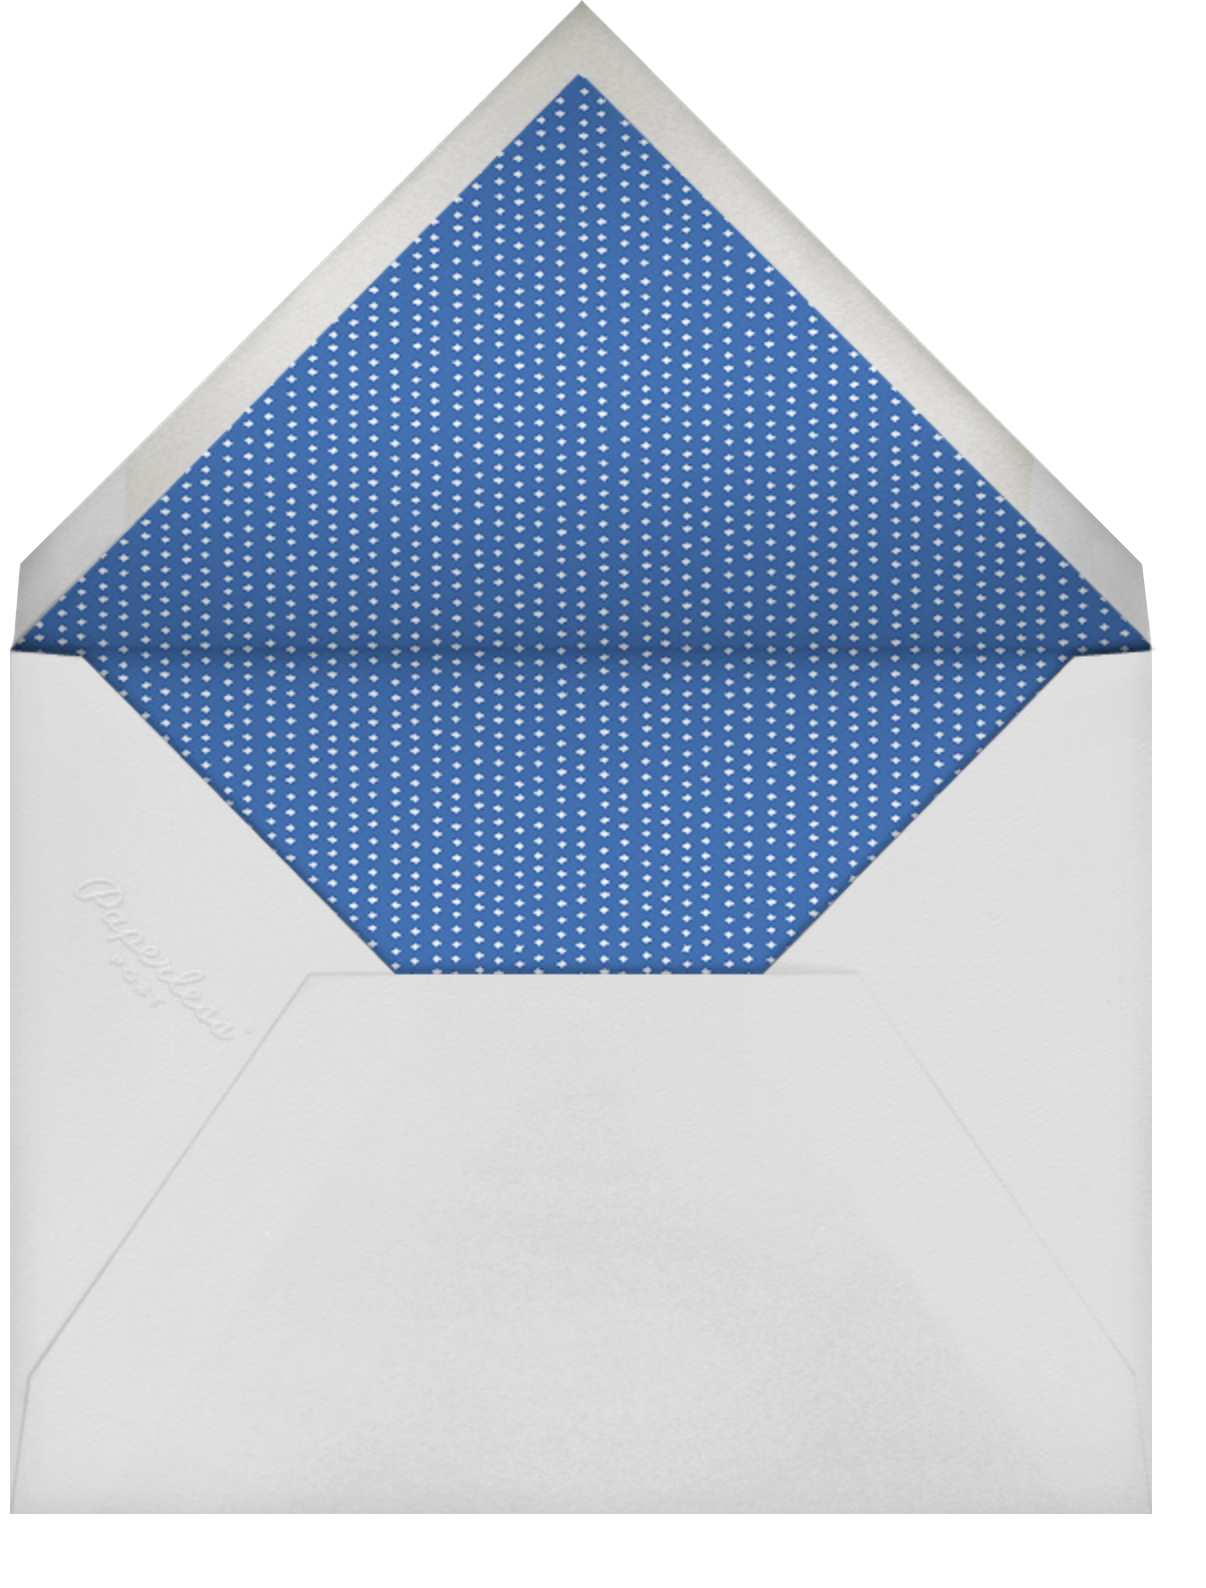 Oaxacan (Square) - White - Paperless Post - Quinceañera - envelope back